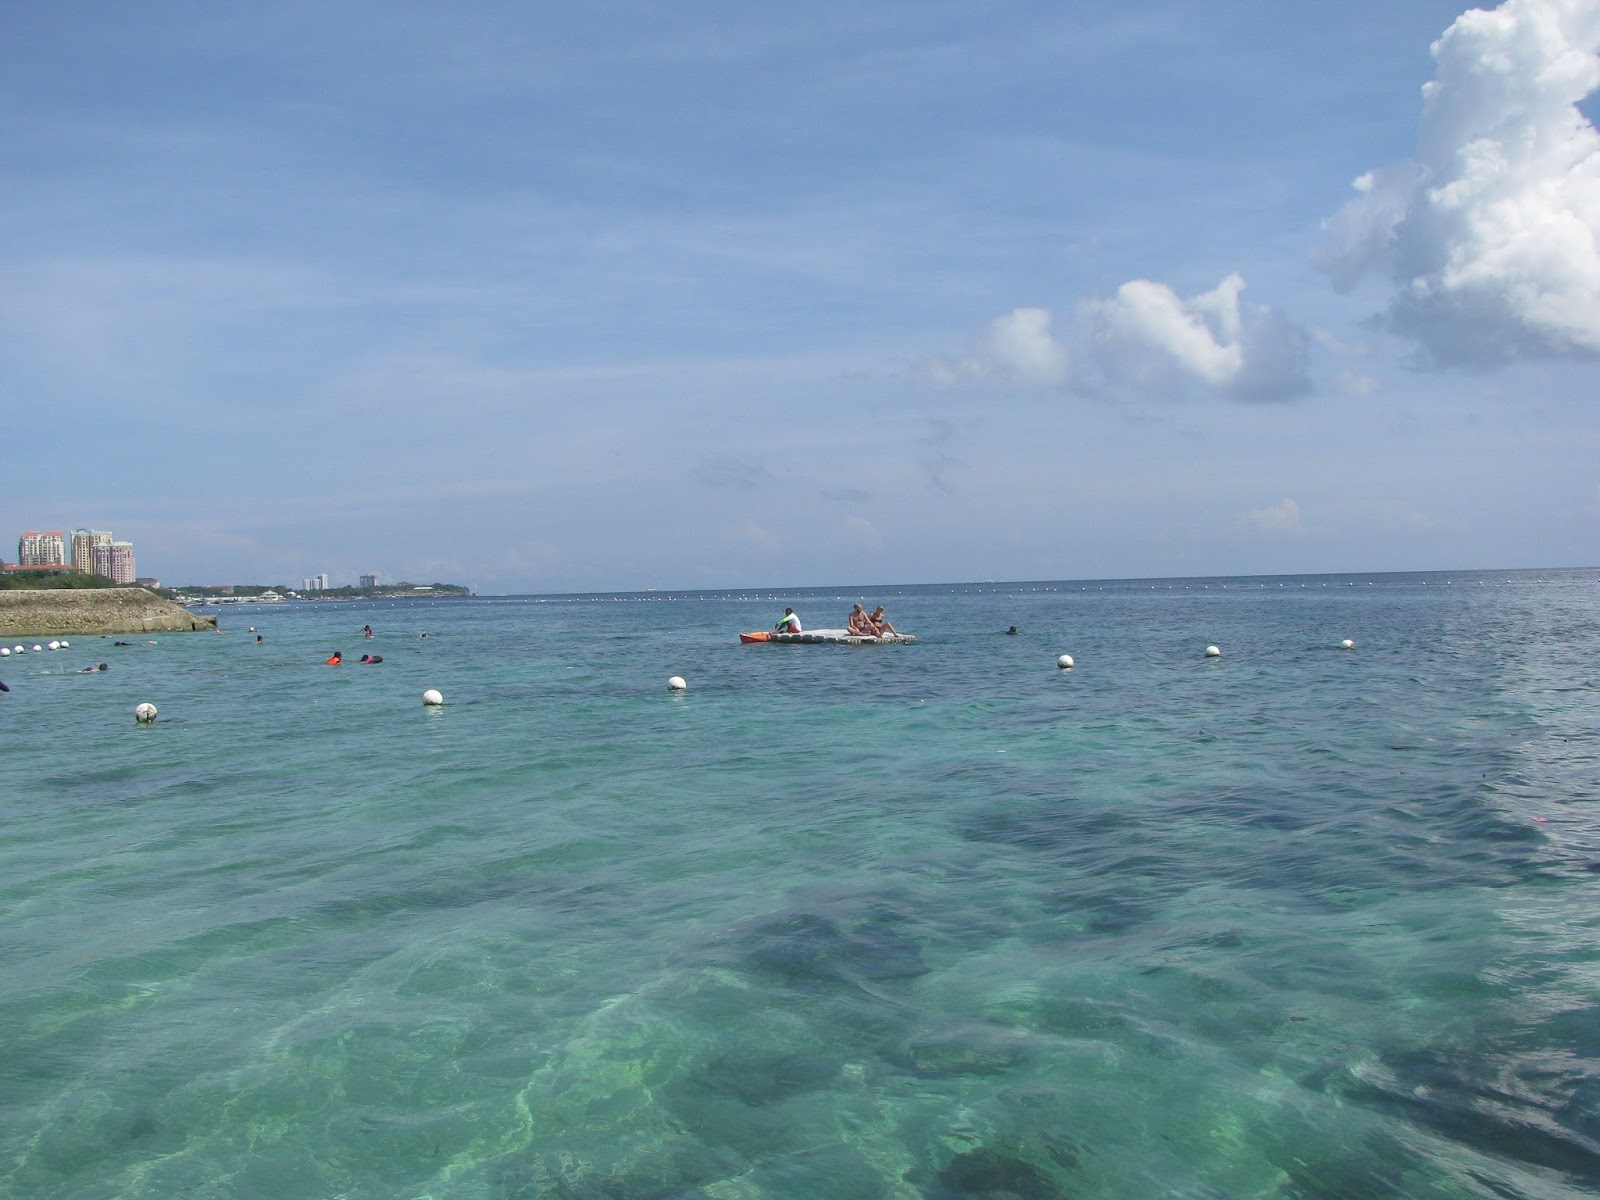 Mactan Cebu water activities